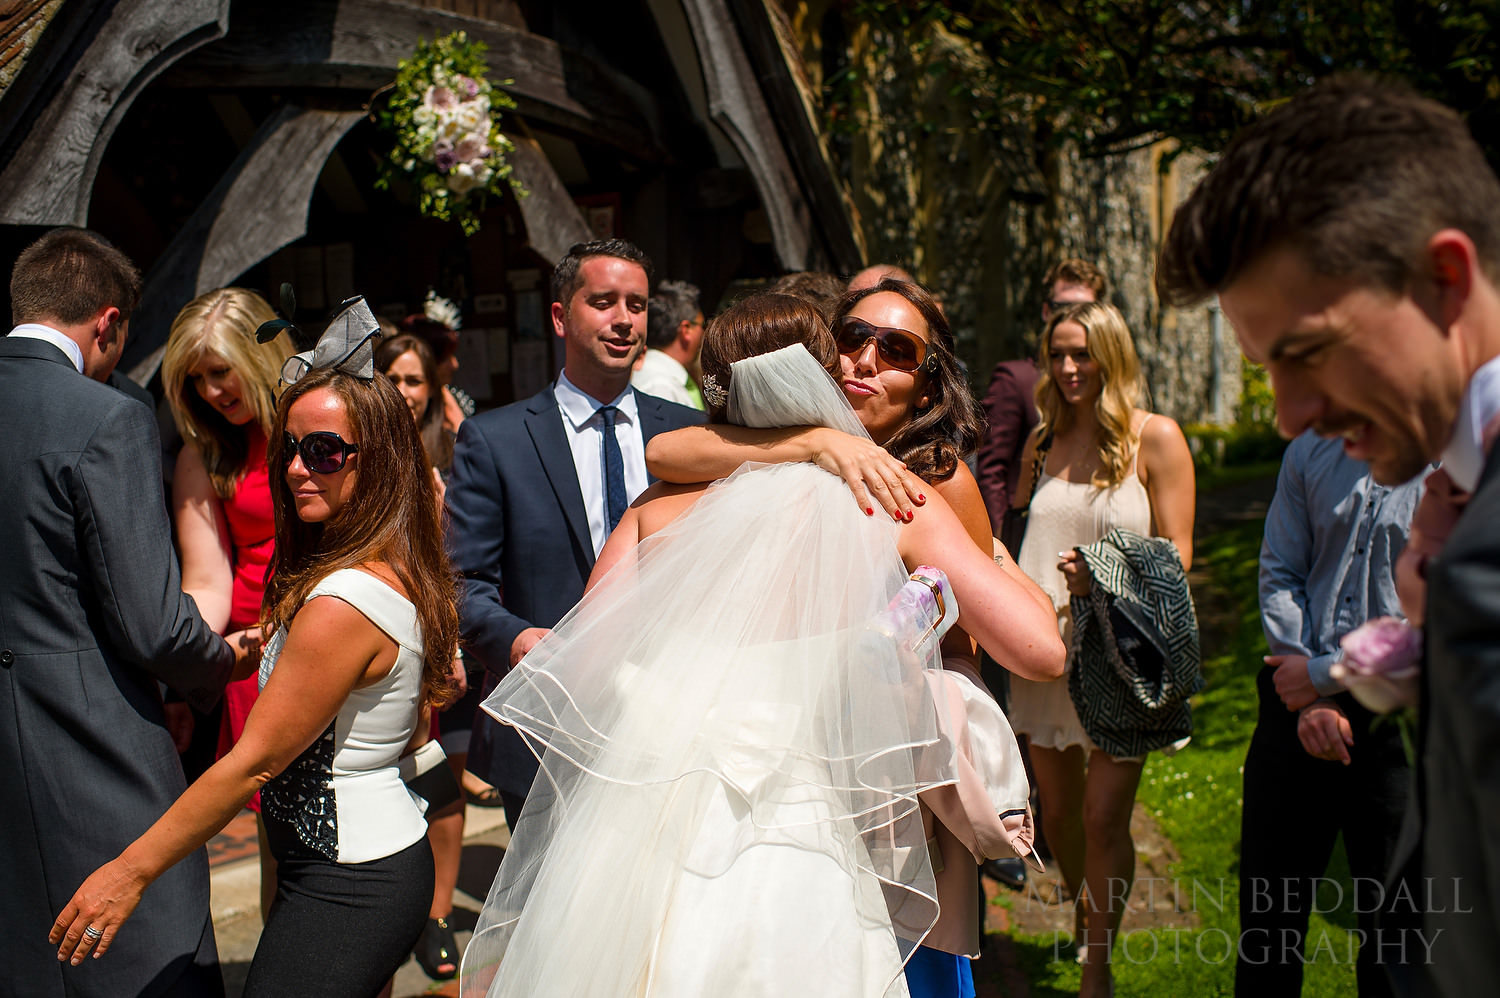 Hug for the bride outside the church